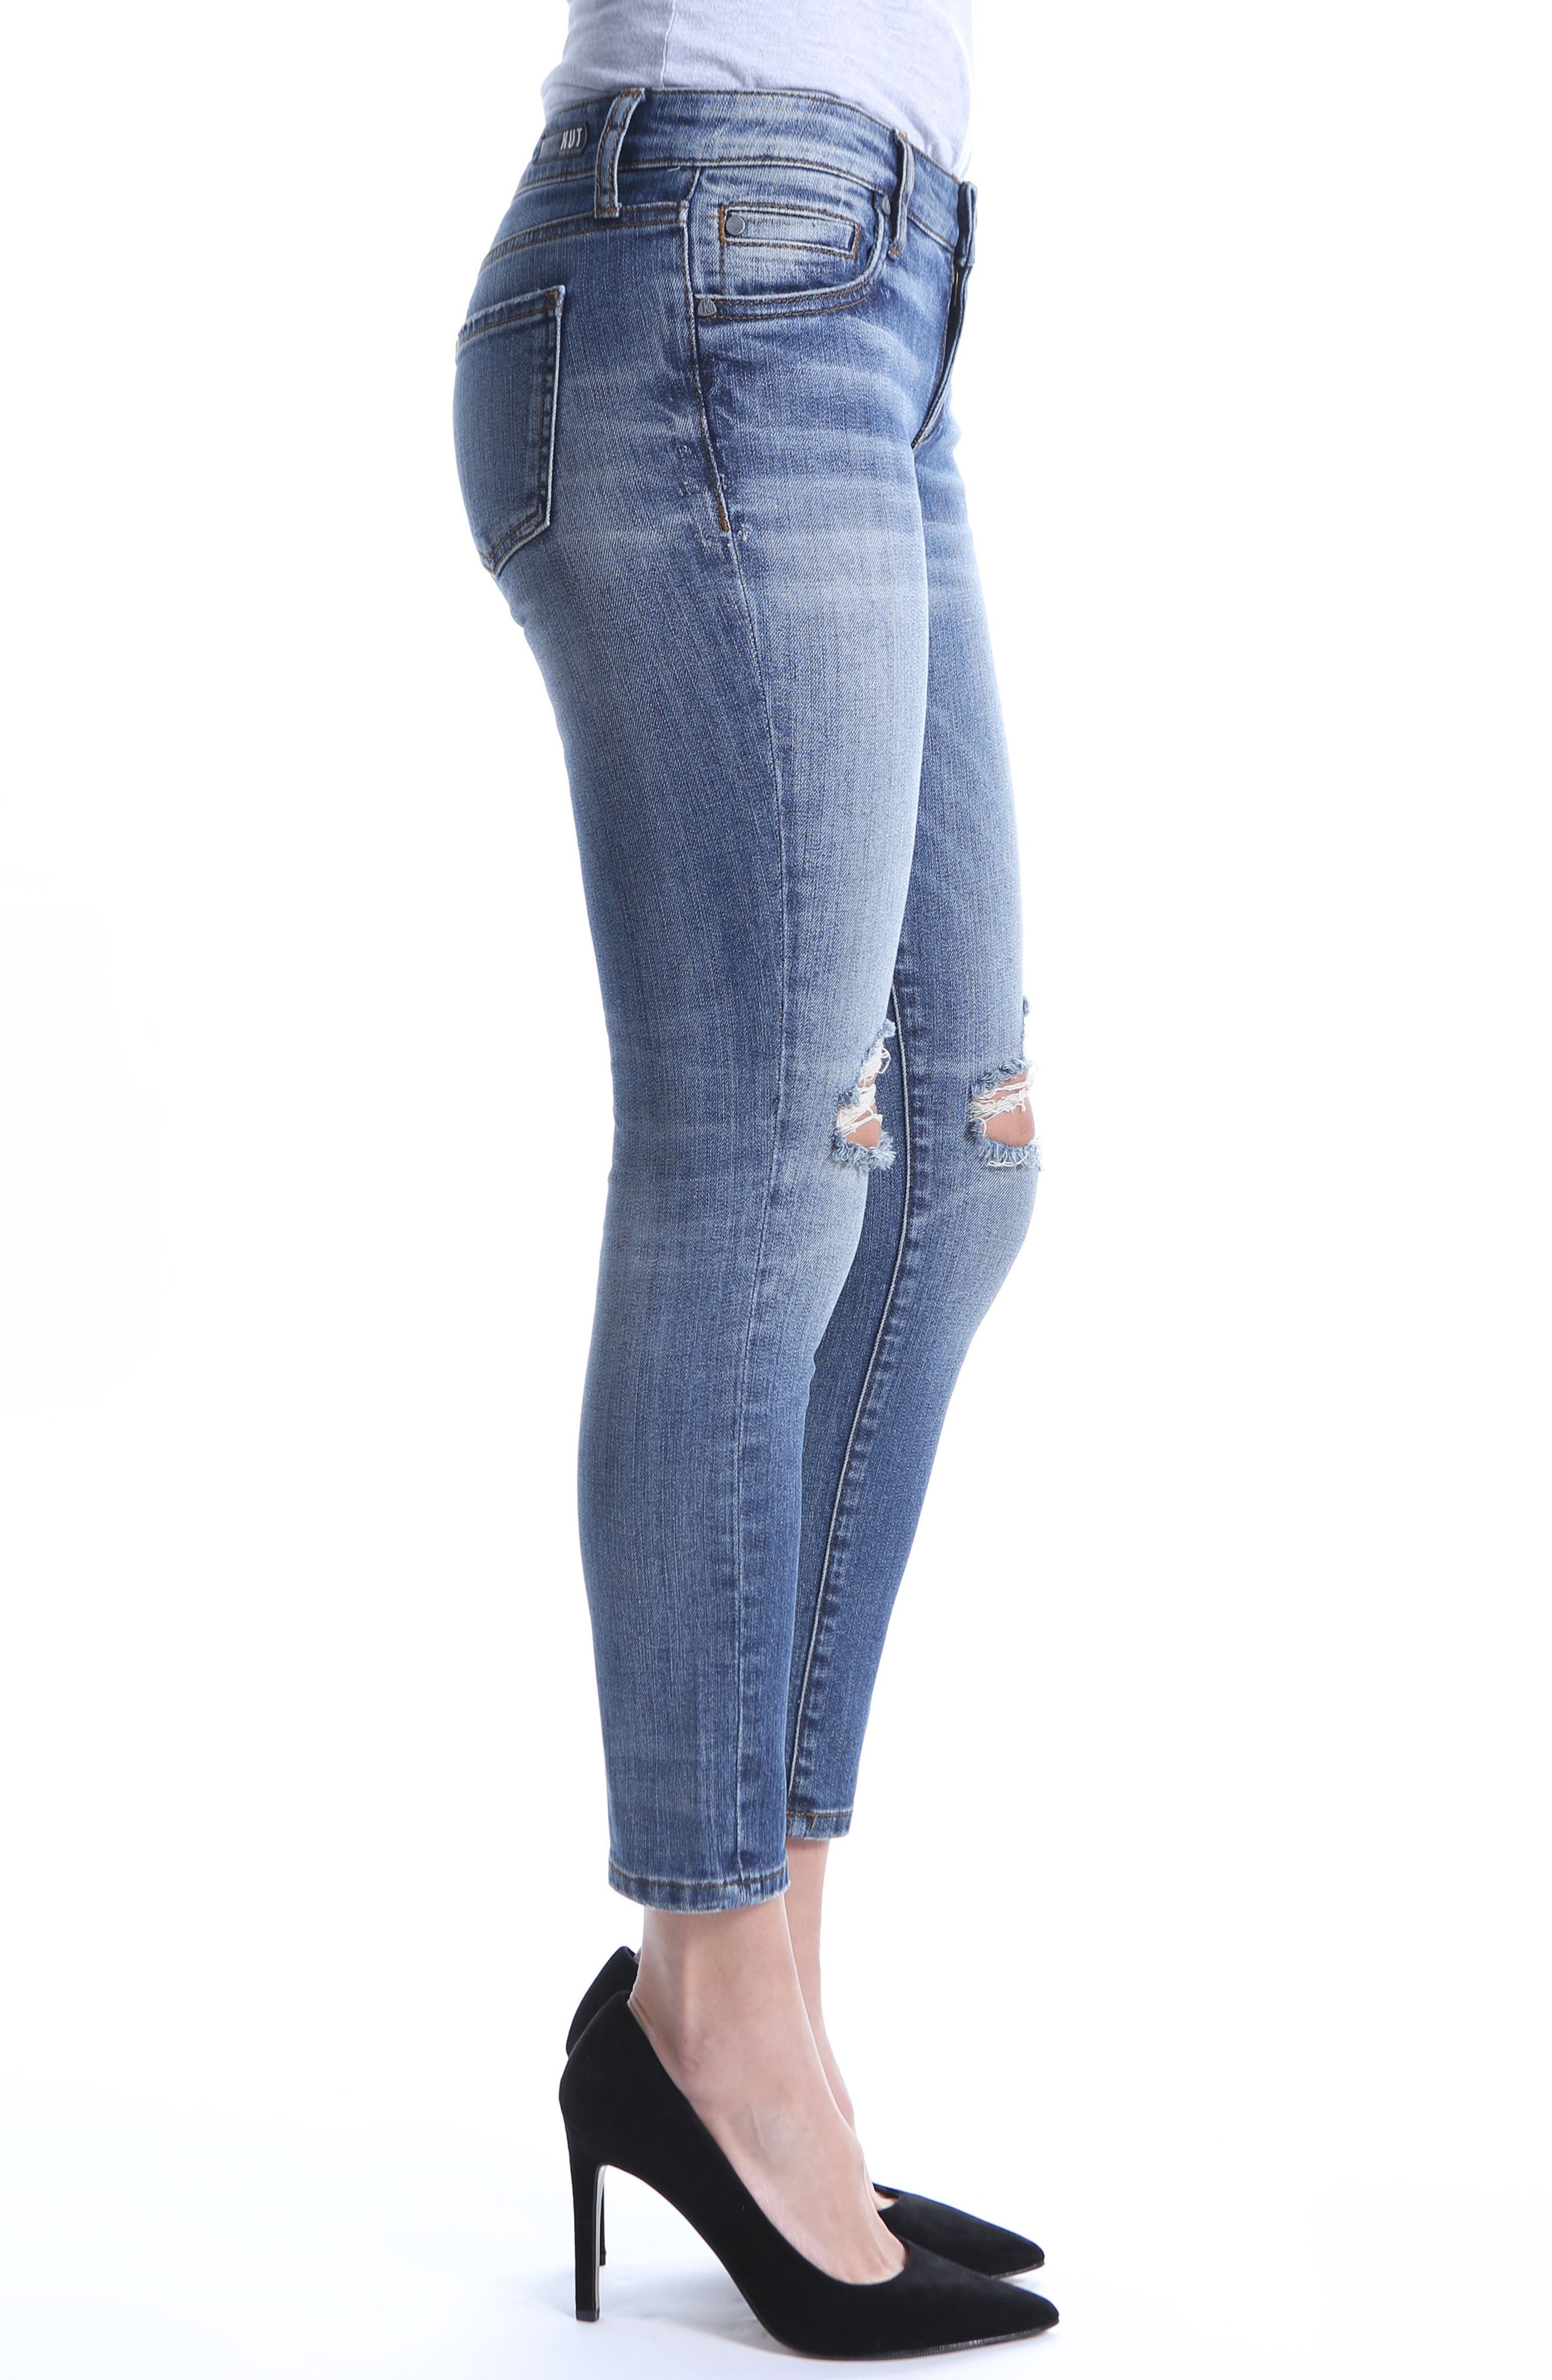 Catherine Ripped Straight Leg Ankle Jeans,                             Alternate thumbnail 3, color,                             Increase